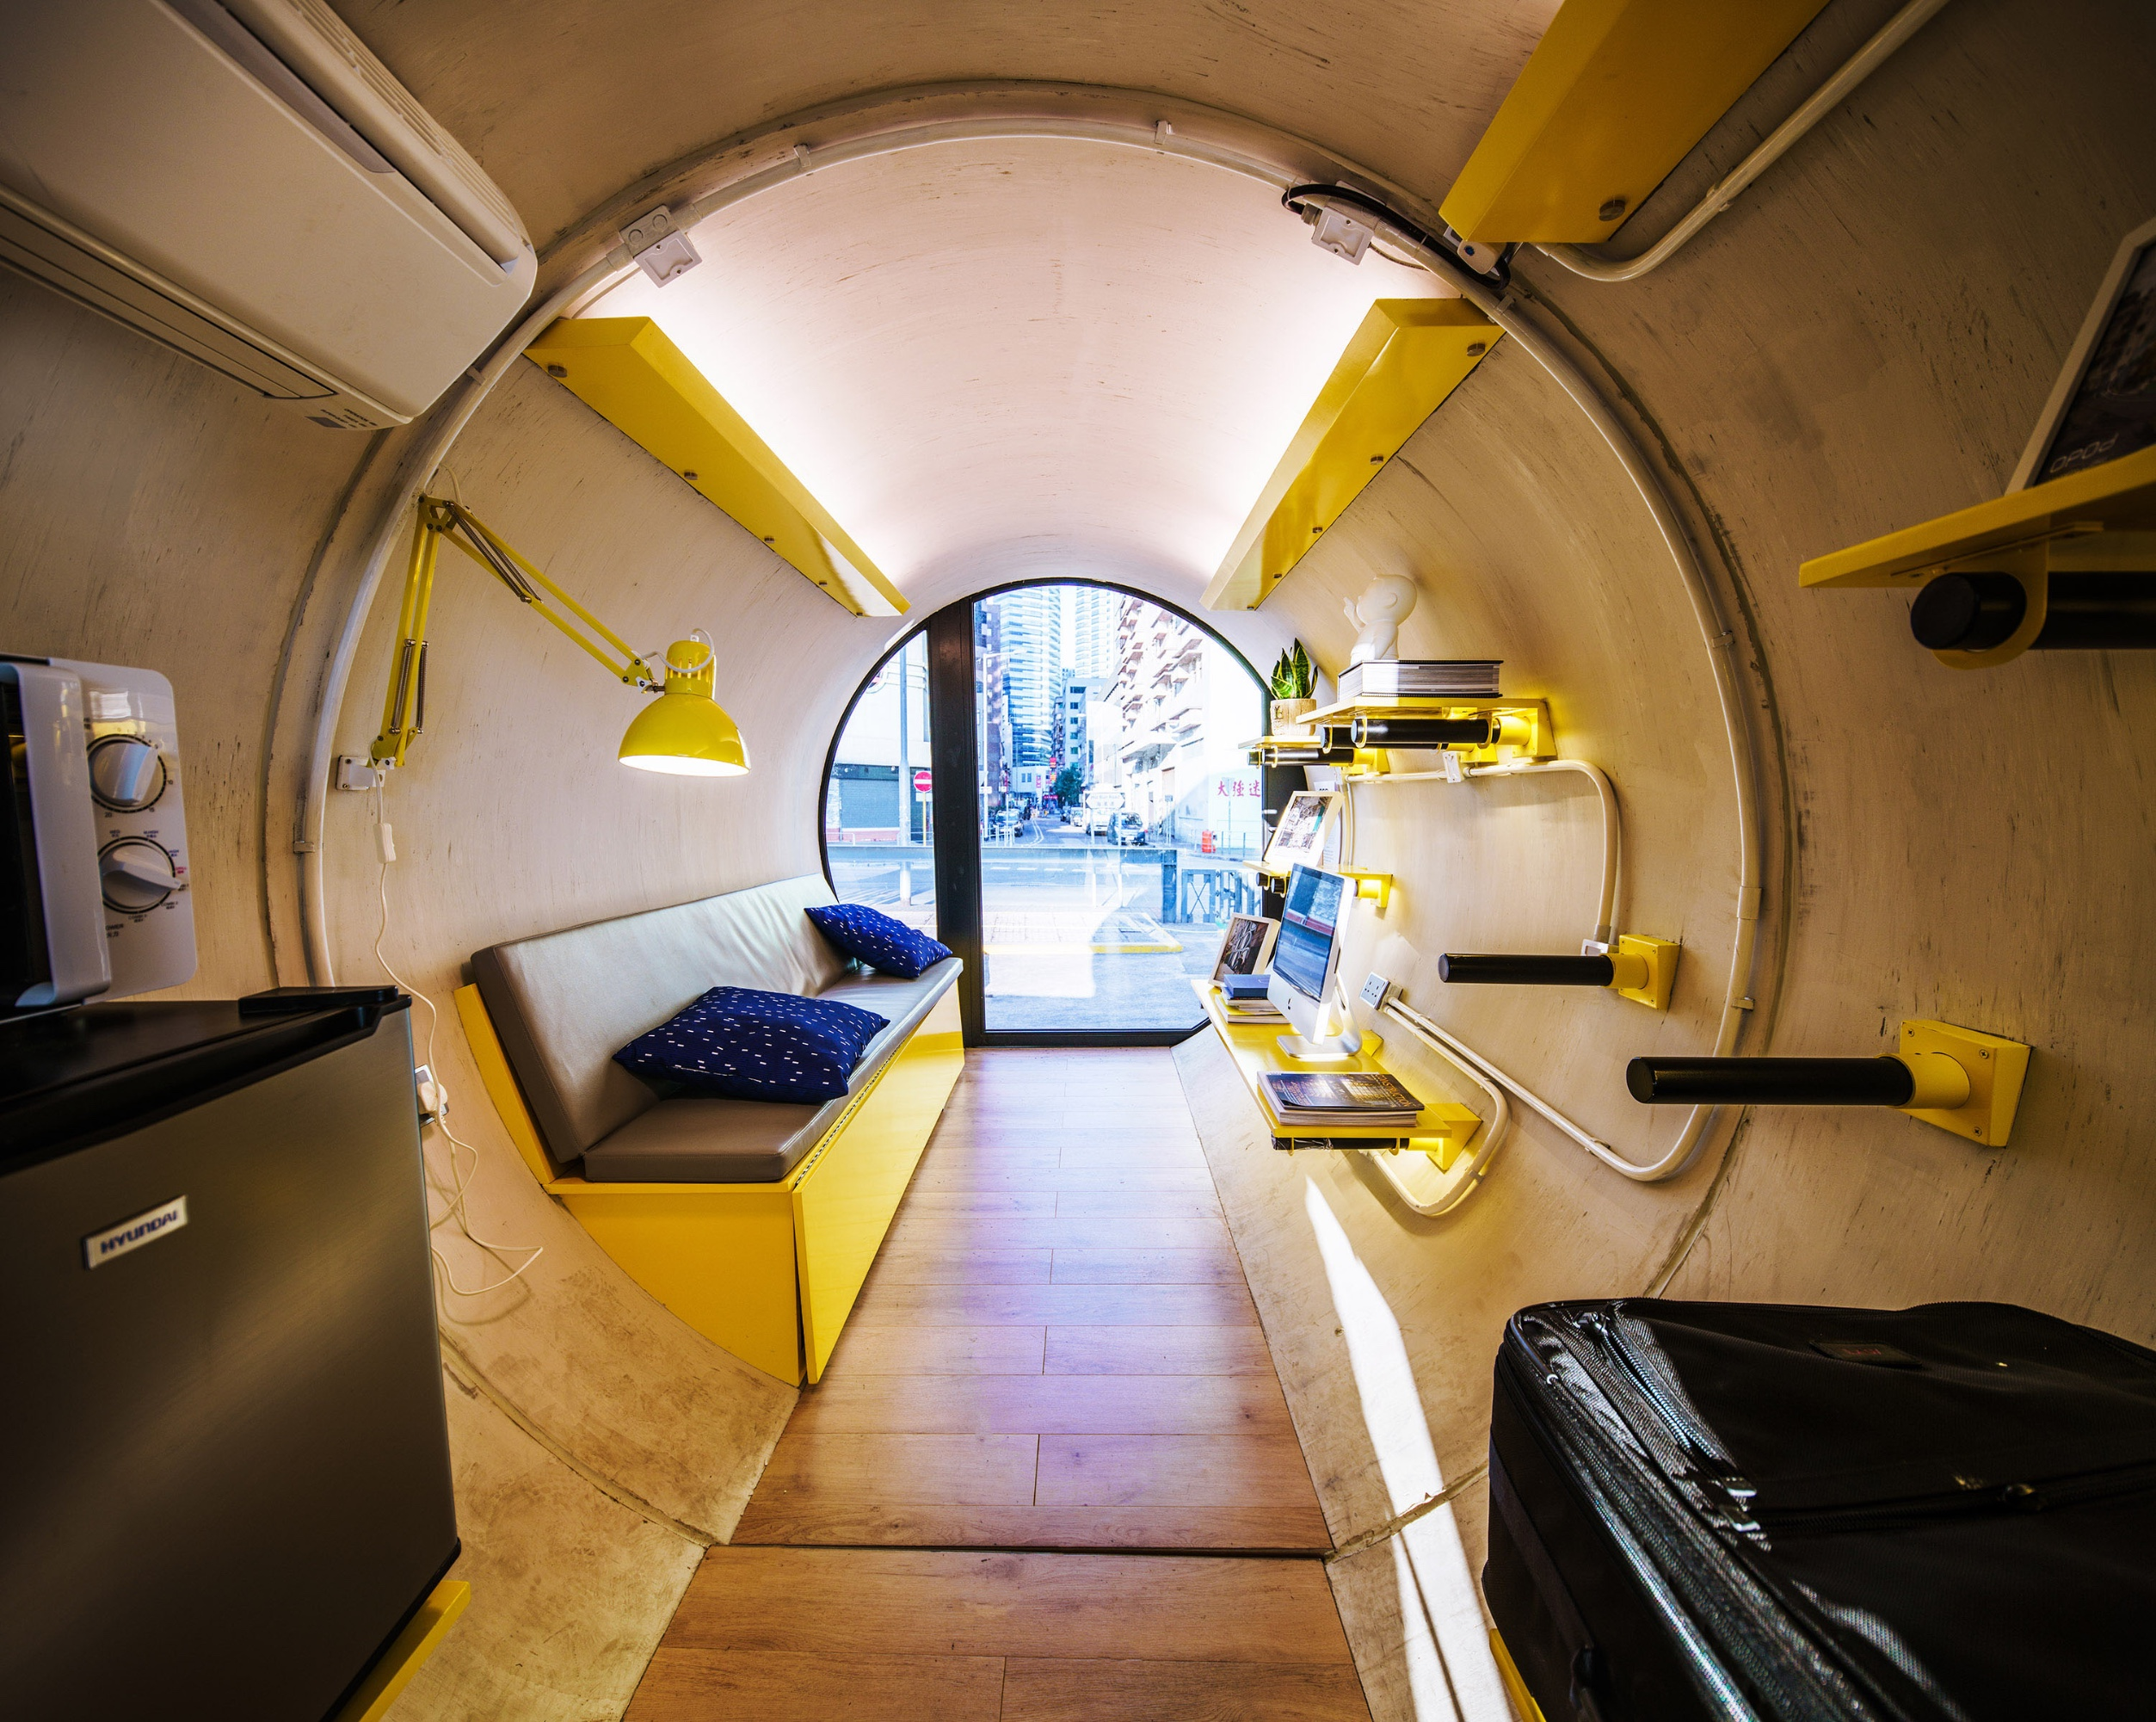 OPod Tube House by James Law Cybertecture